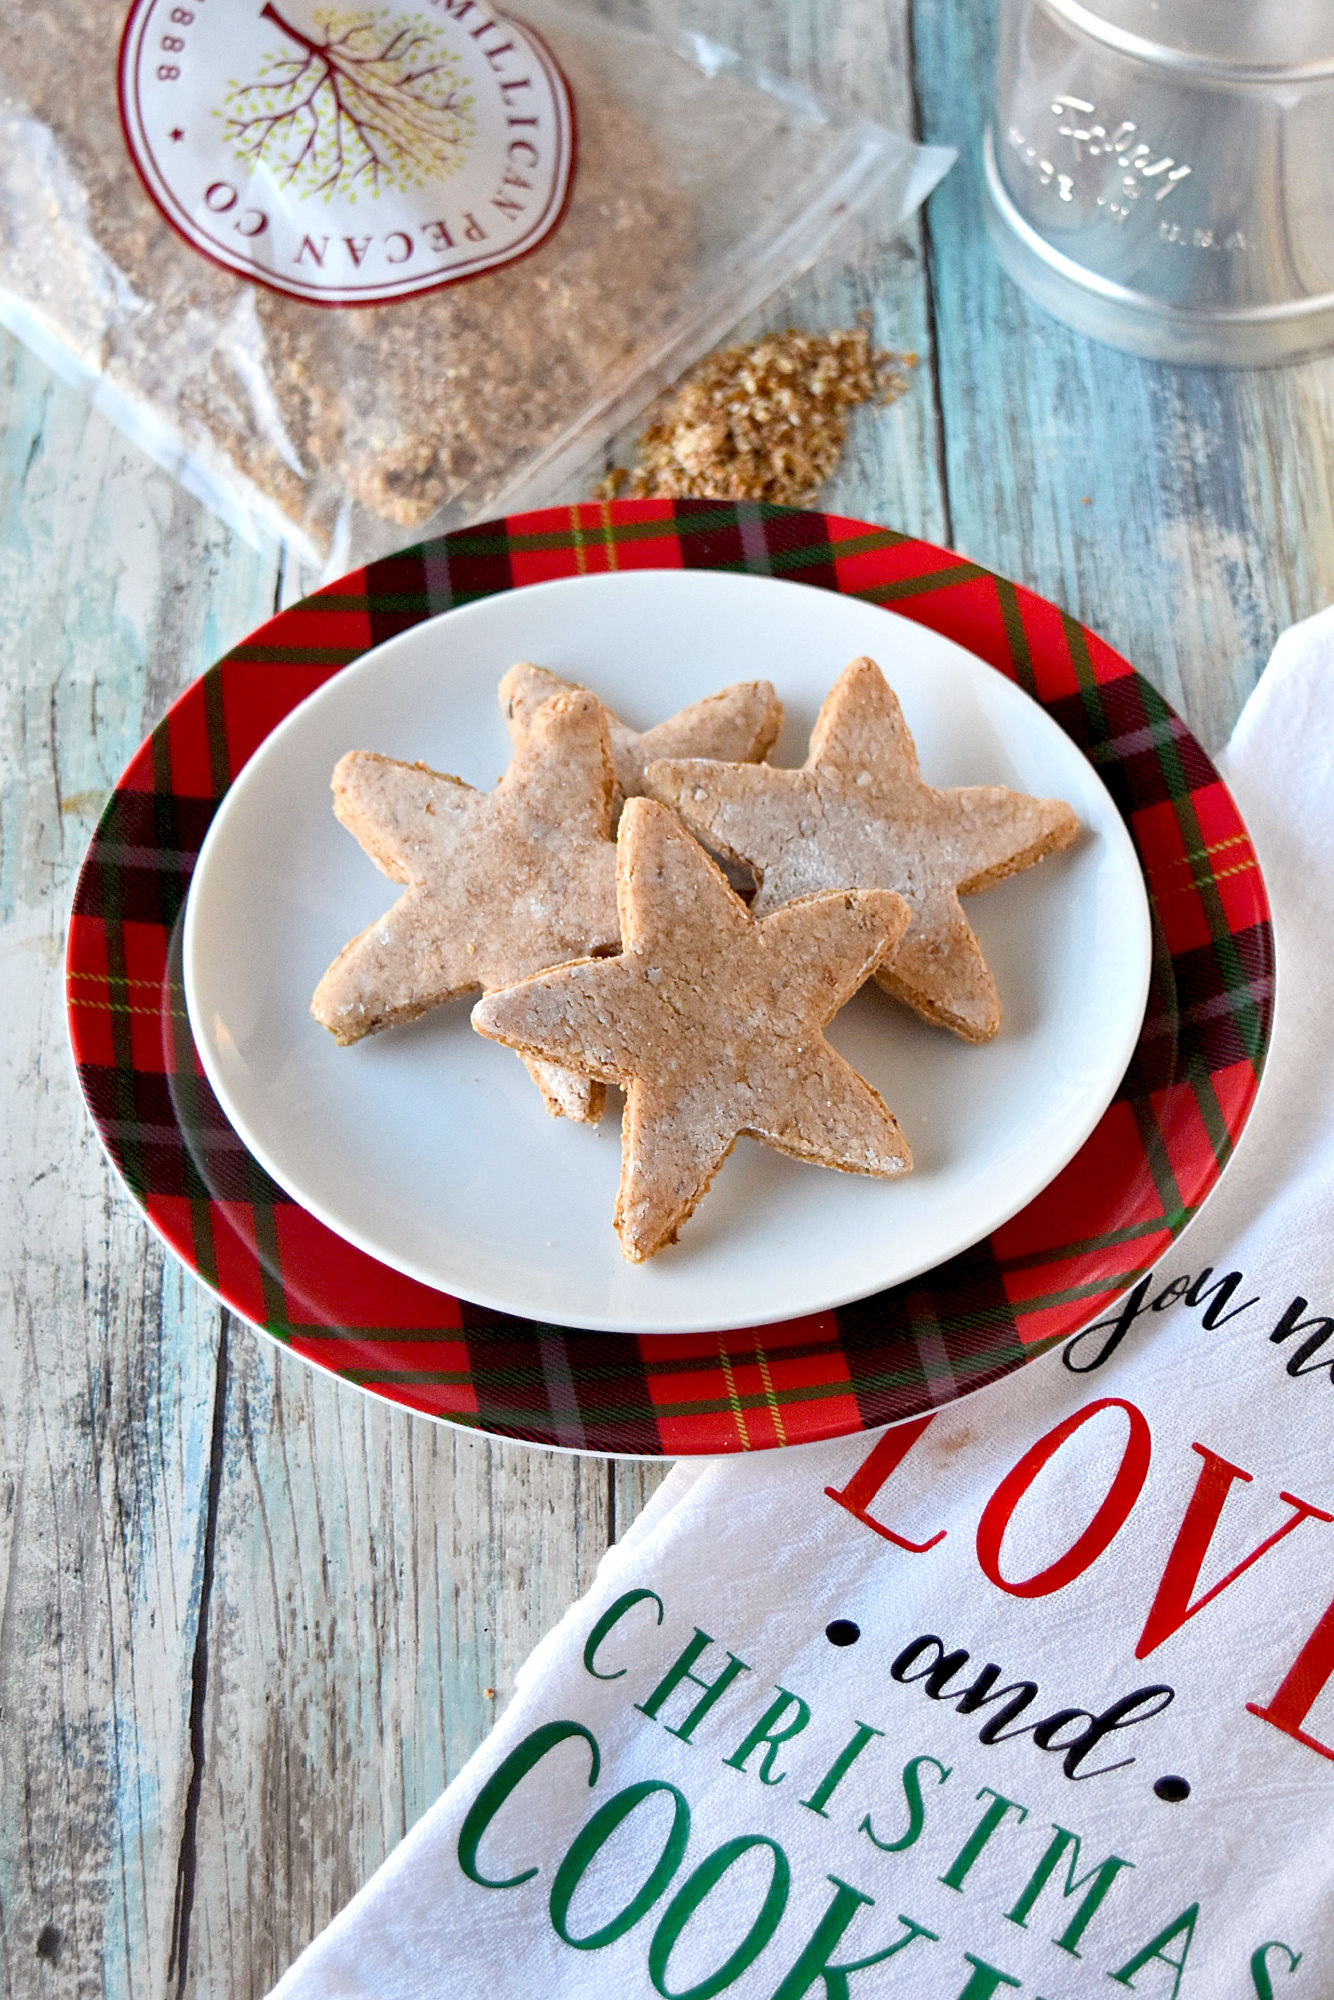 Zimtstern are super simple to make and taste completely amazing! The nut meal and cinnamon in a meringue cookie is deliciously light. #ChristmasCookies